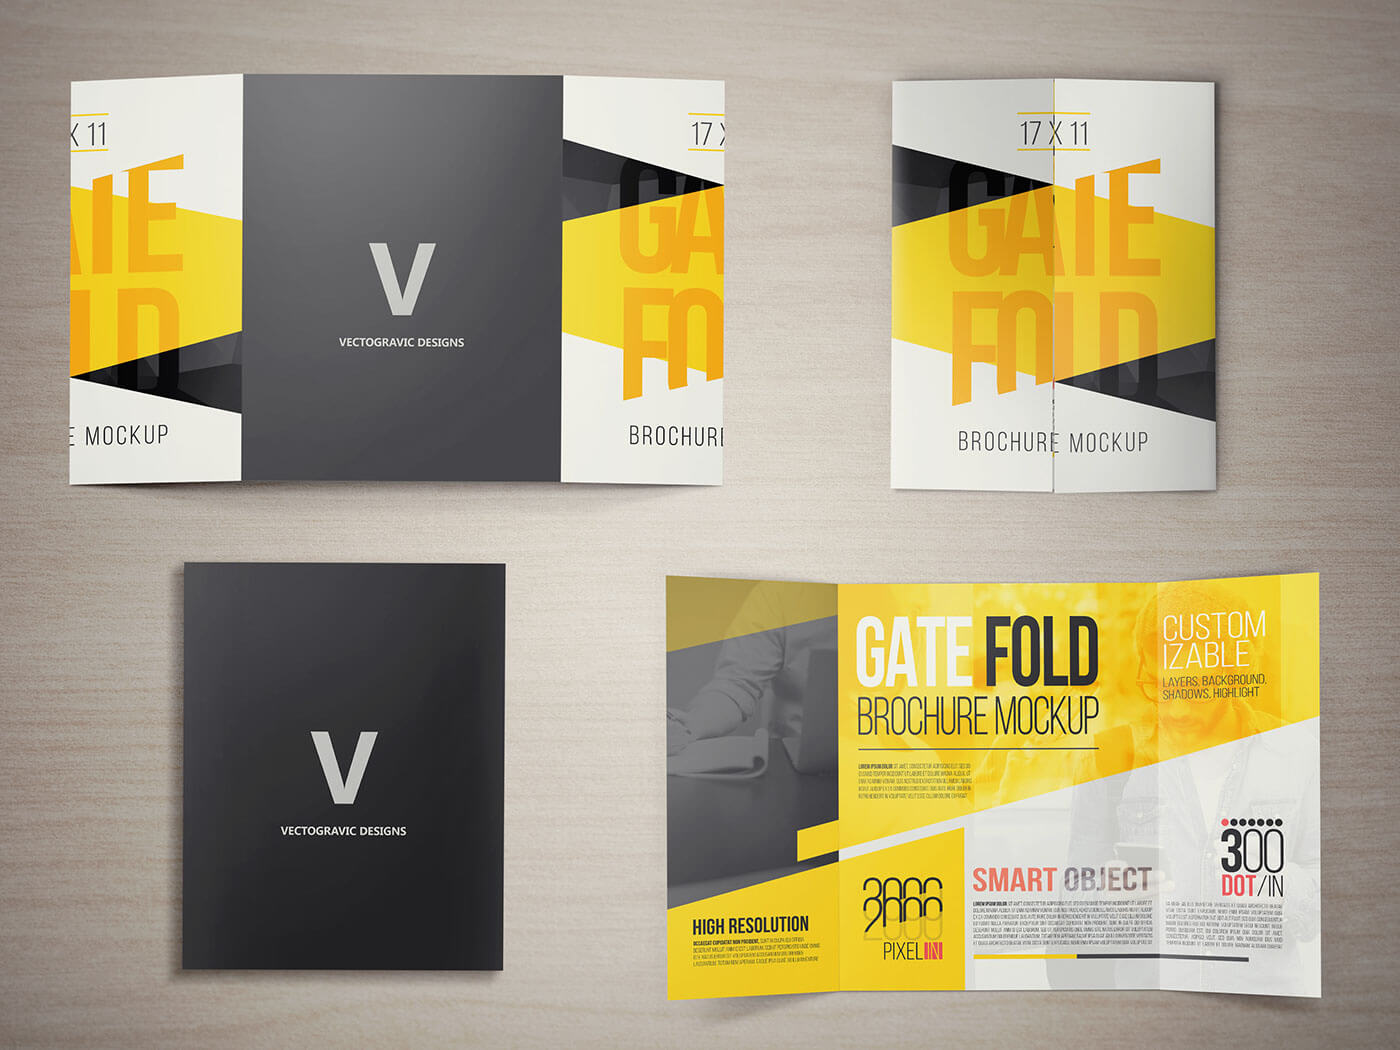 17 X 11 Gate Fold Brochure Mockup On Behance In Gate Fold Brochure Template